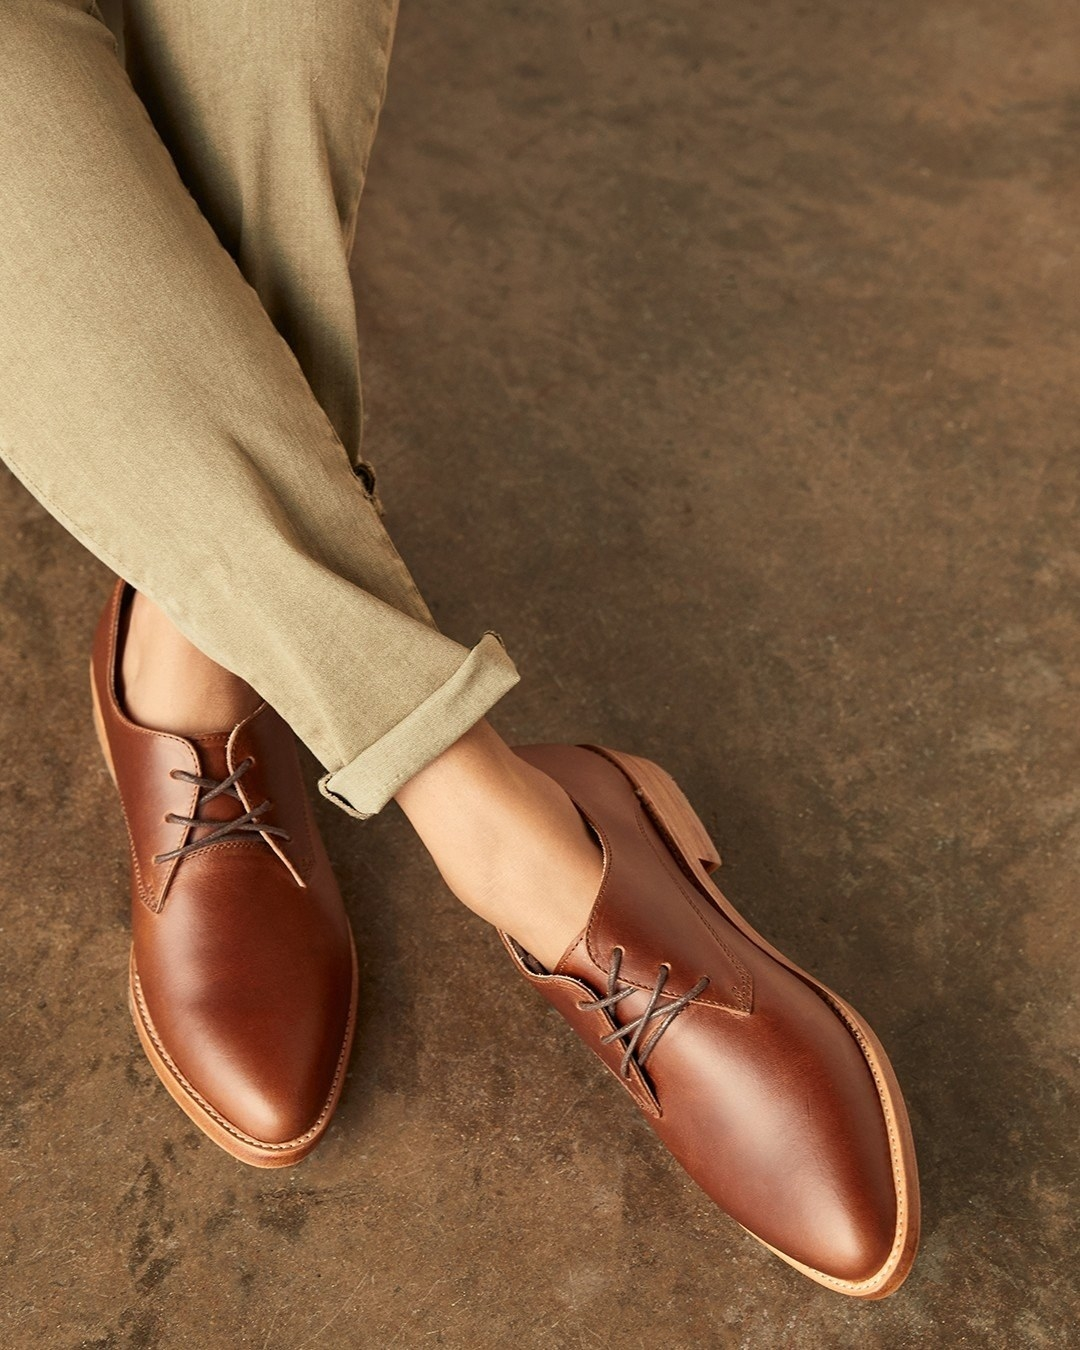 Nisolo's brown Oxfords paired with rolled up pants